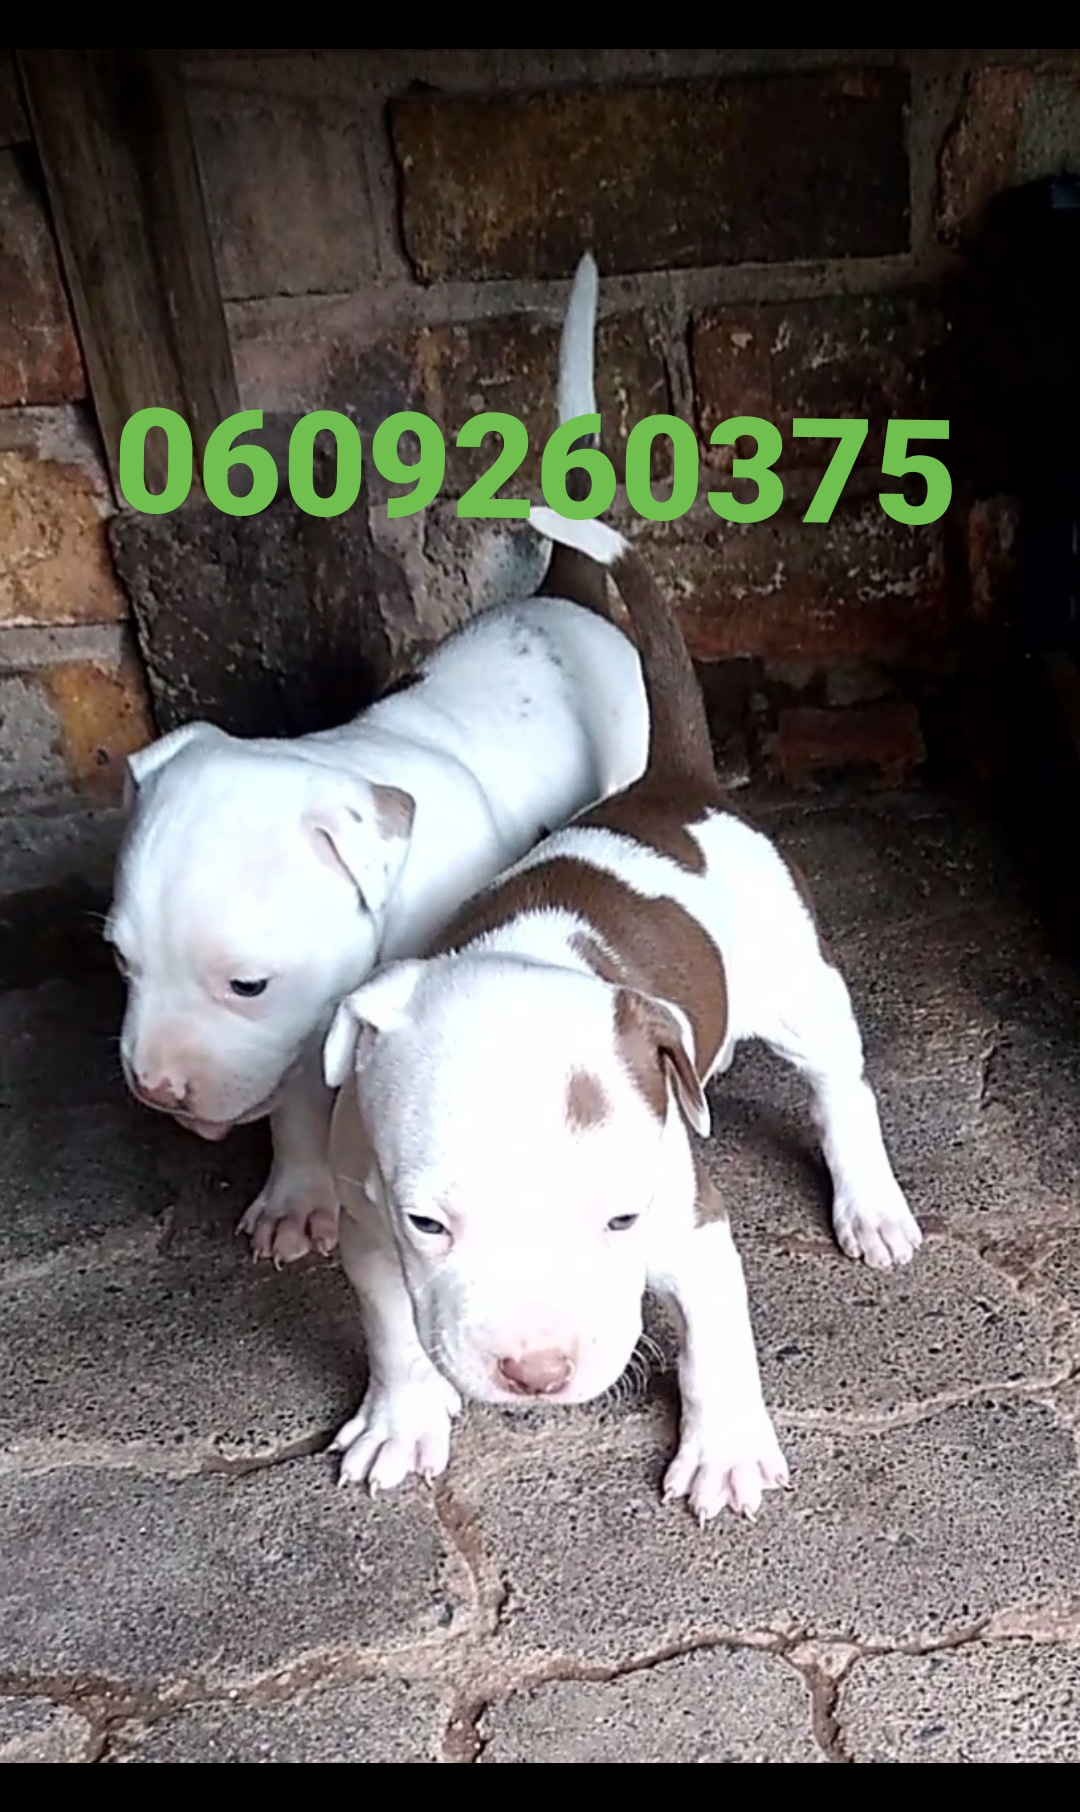 Pitbull Puppies in Pretoria (08/05/2021)